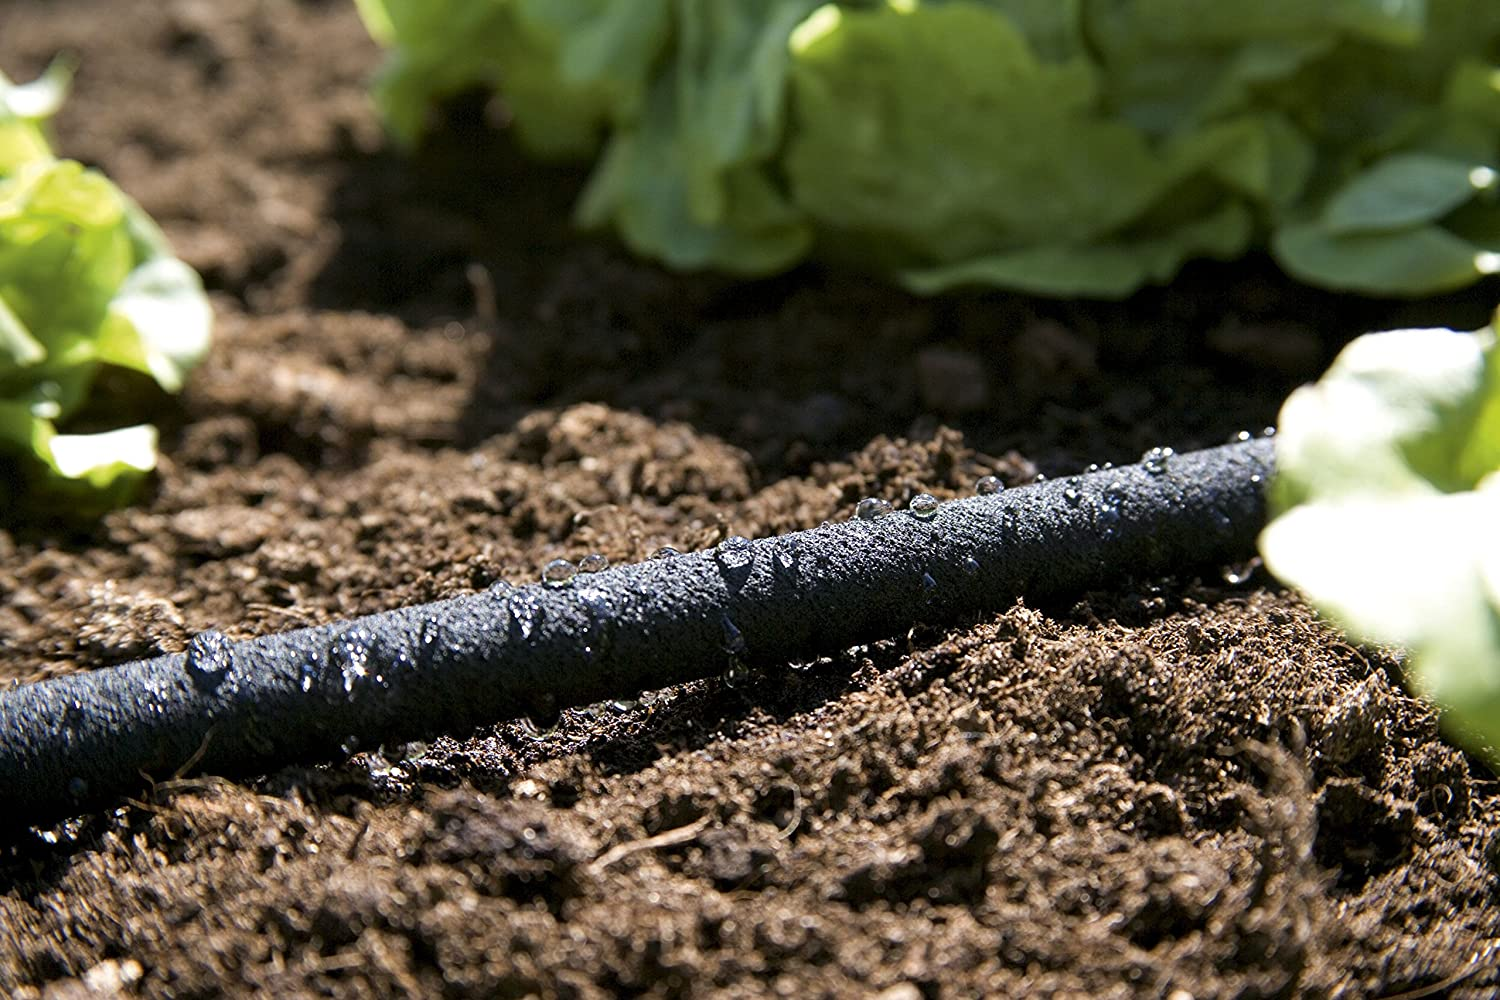 easy to use 1969-20 GARDENA Soaker Hose: Water-saving sprinkler hose for watering plant rows and beds; water savings individually adjustable up to 70/% hose length: 15 m